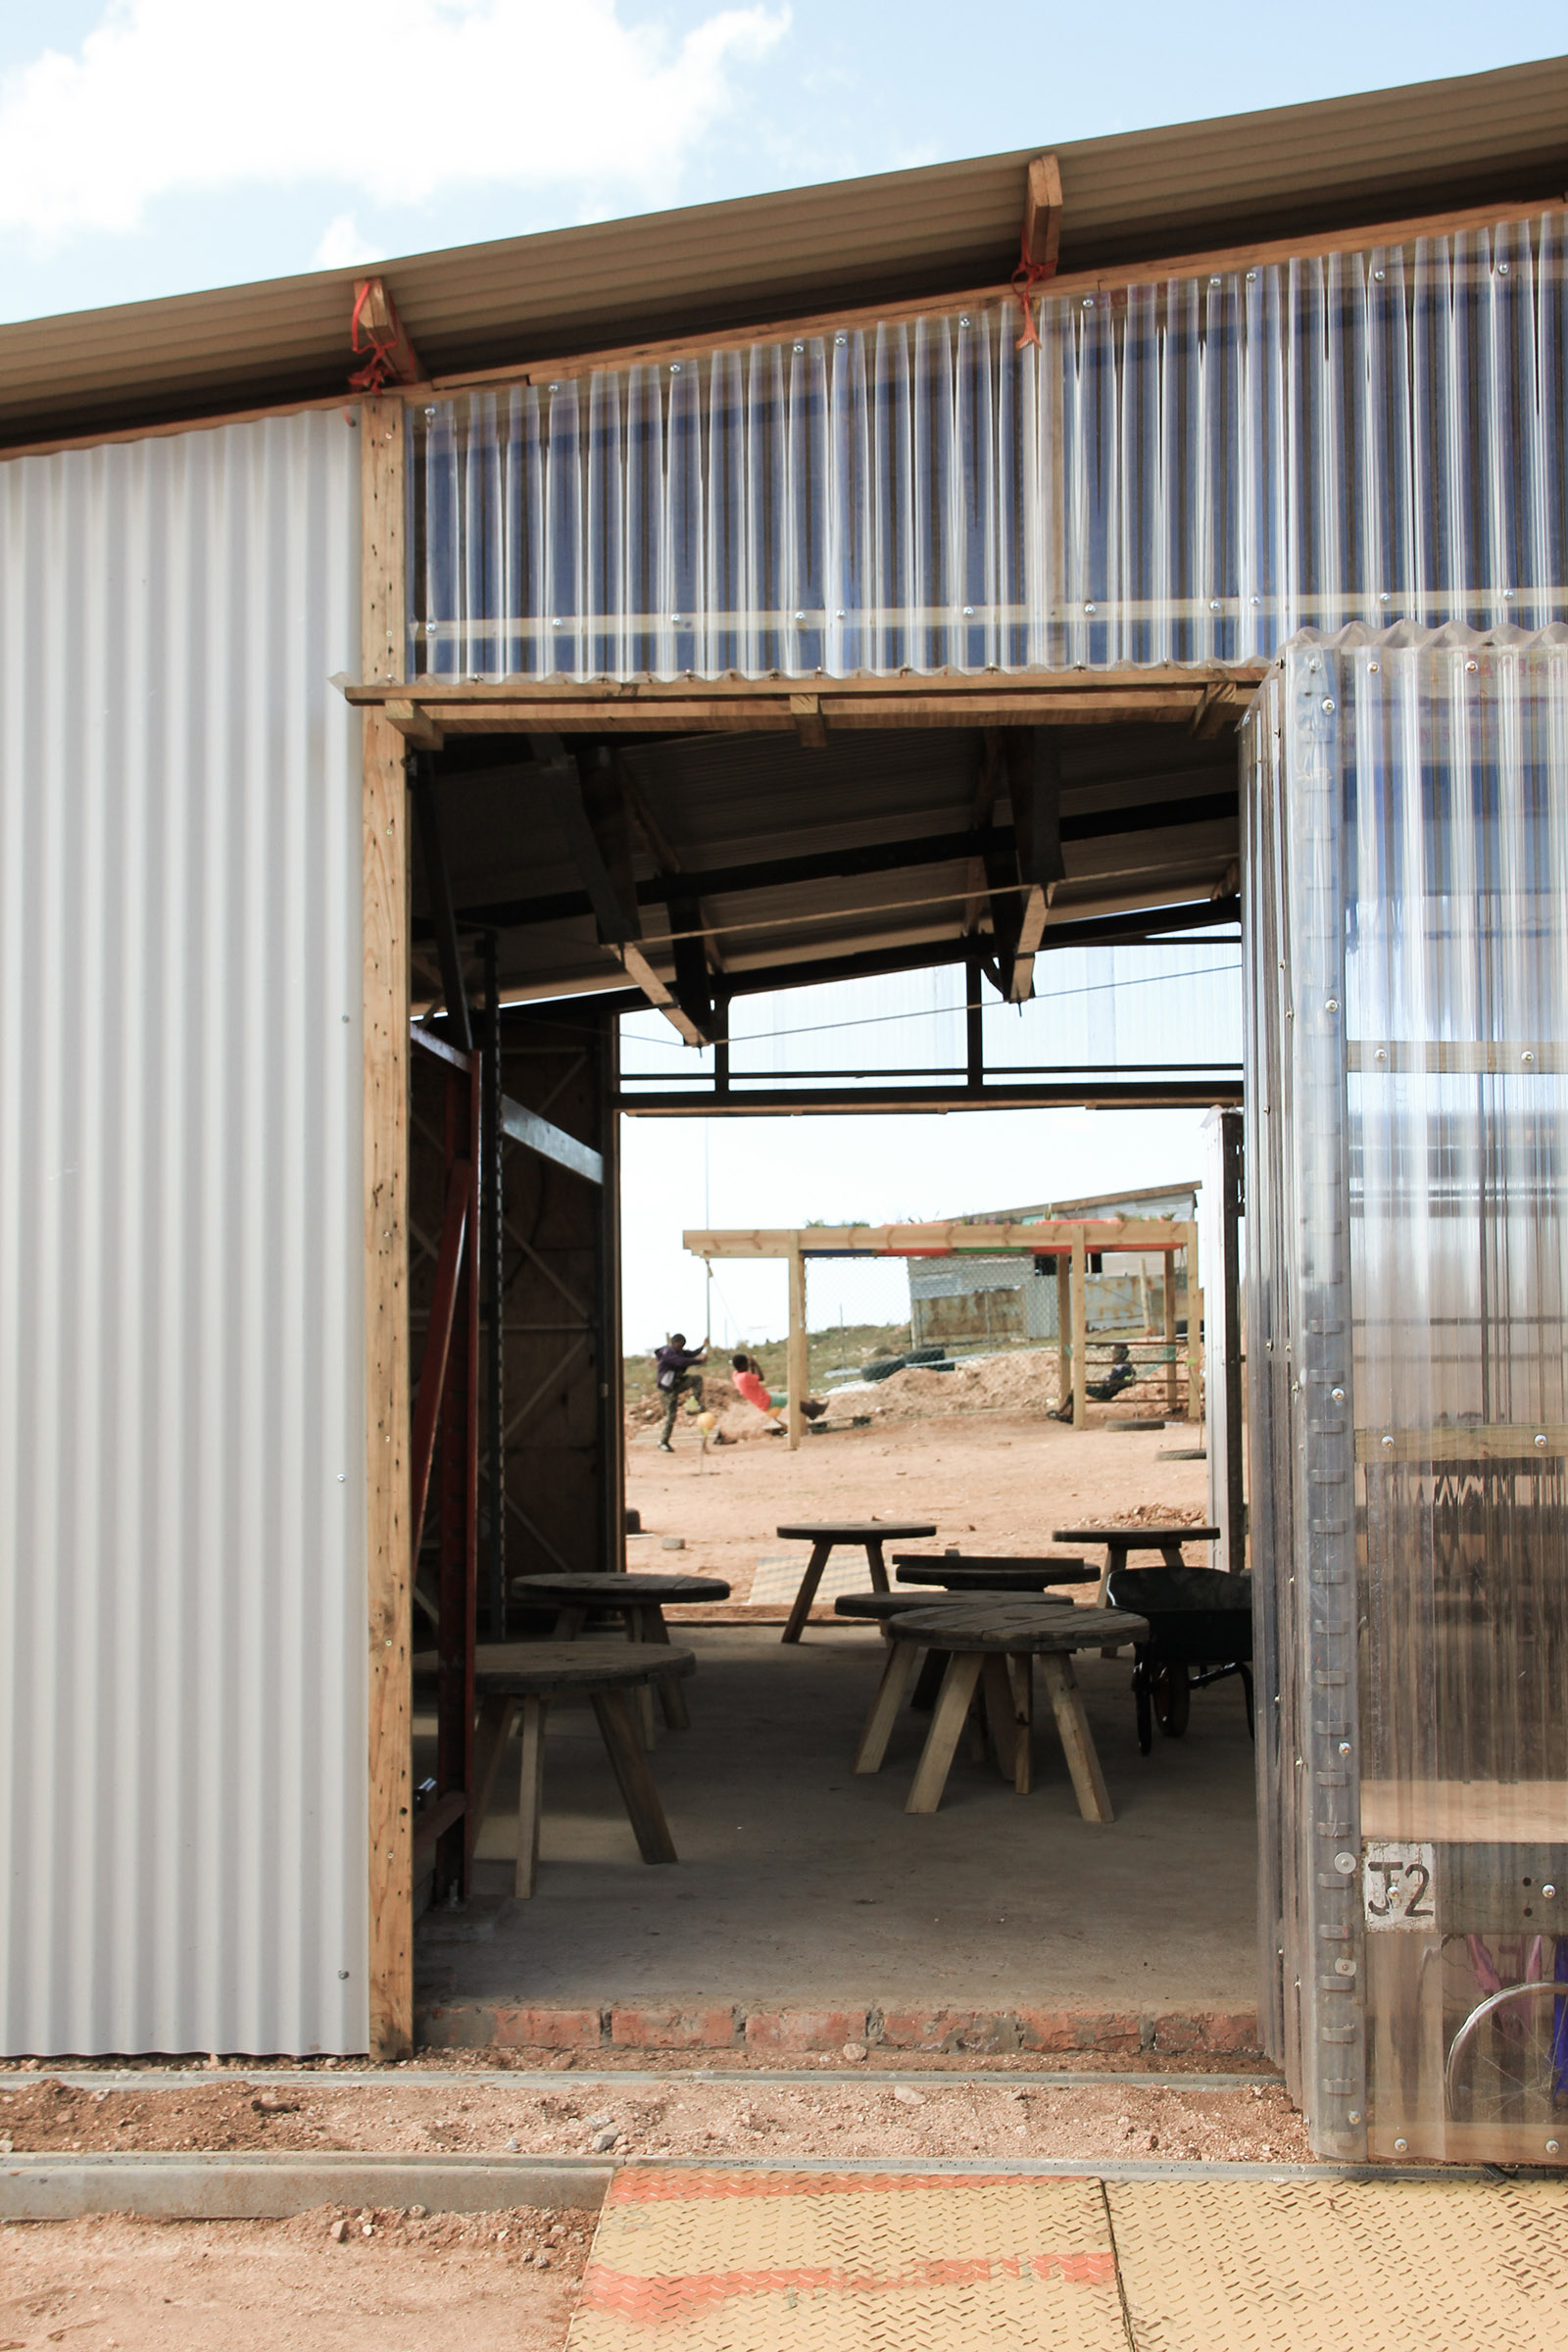 The entrance to the preschool has corrugated cladding, both opaque and transparent, set over a timber frame